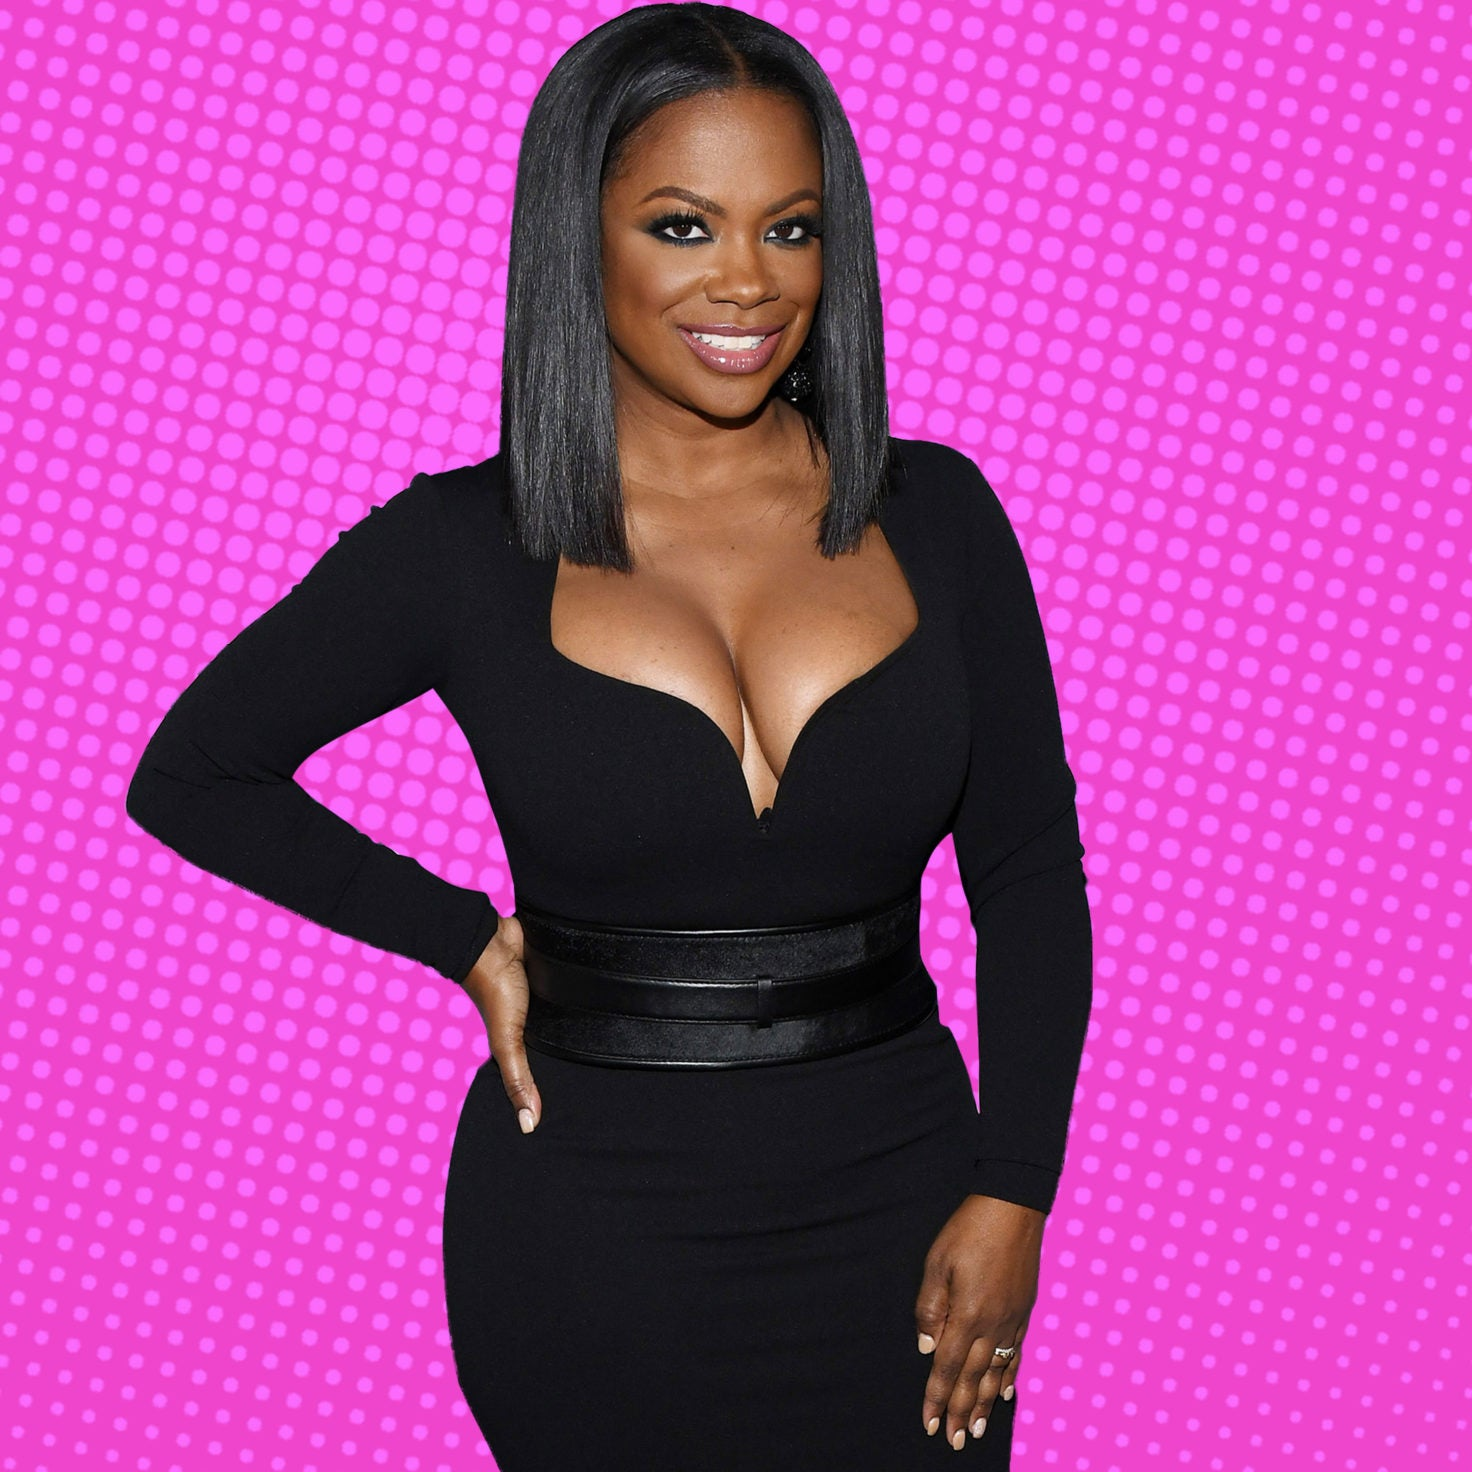 kandi-burruss-celebrates-reaching-8-million-followers-on-ig-with-a-hilarious-video-of-her-twerking-on-the-kitchen-counter